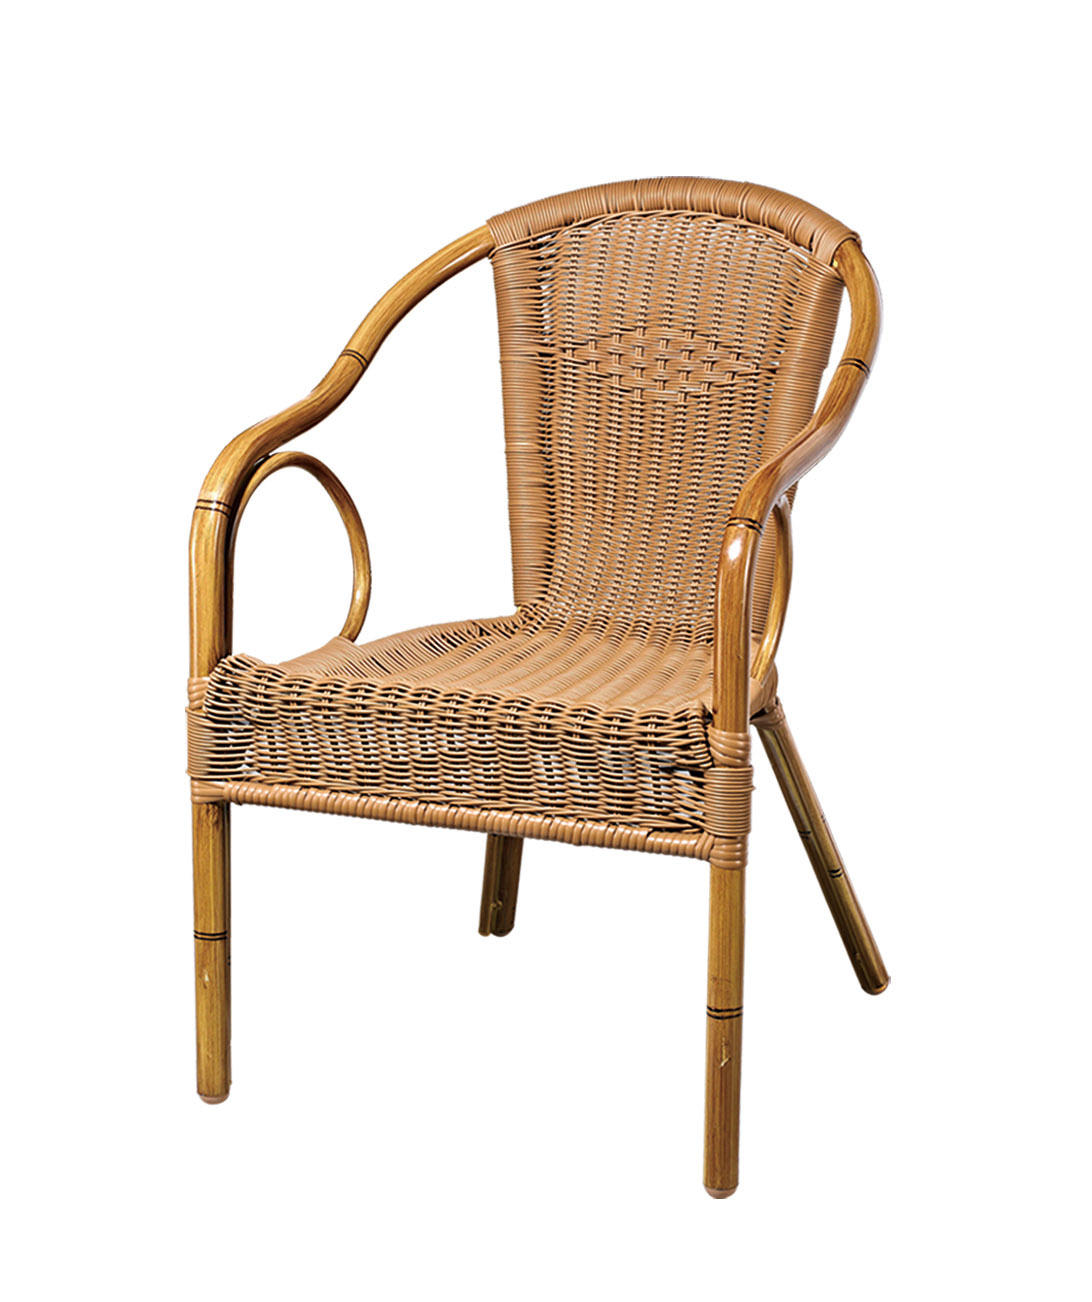 TW3001 aluminum rattan chair